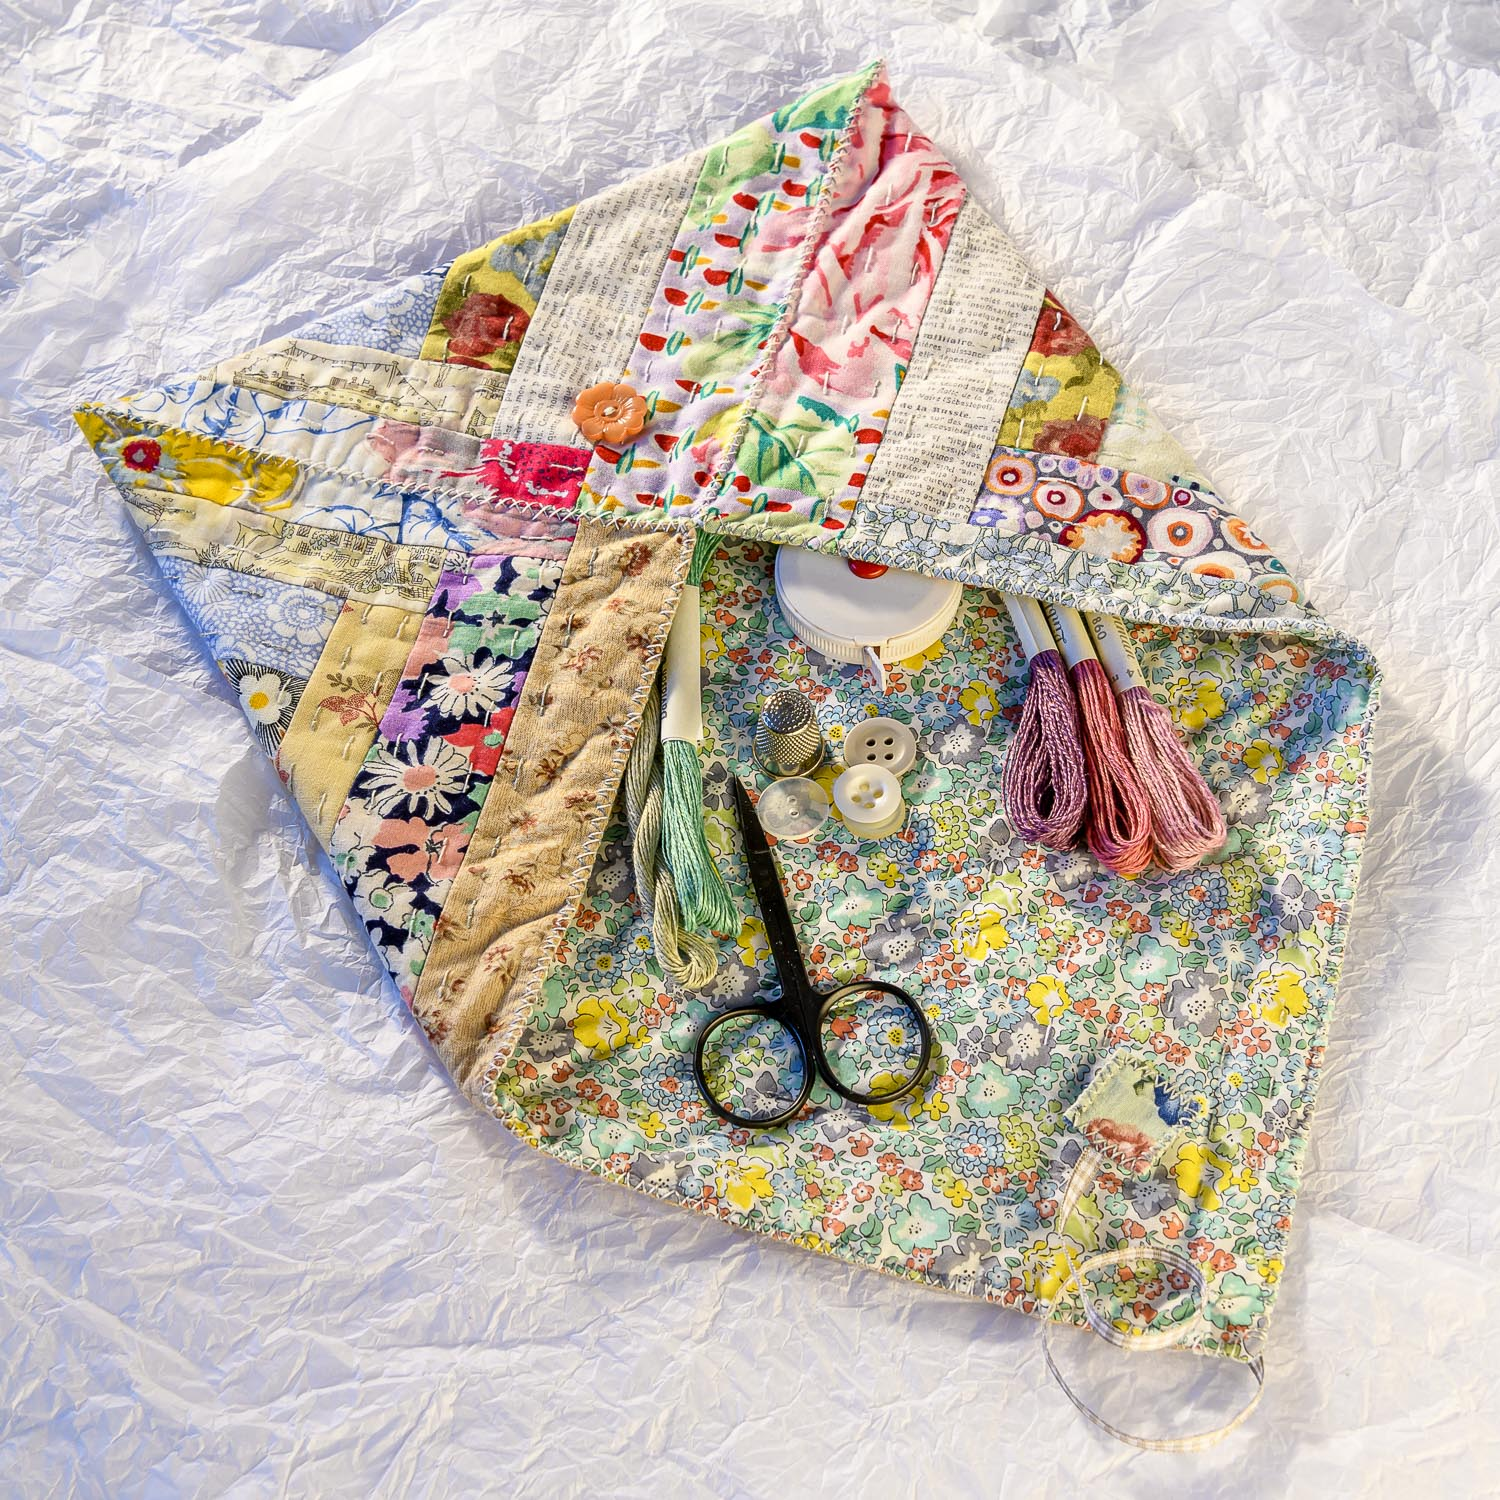 Quilted Patchworks by Carolyn Forster for Fox Chapel 210826wc853839